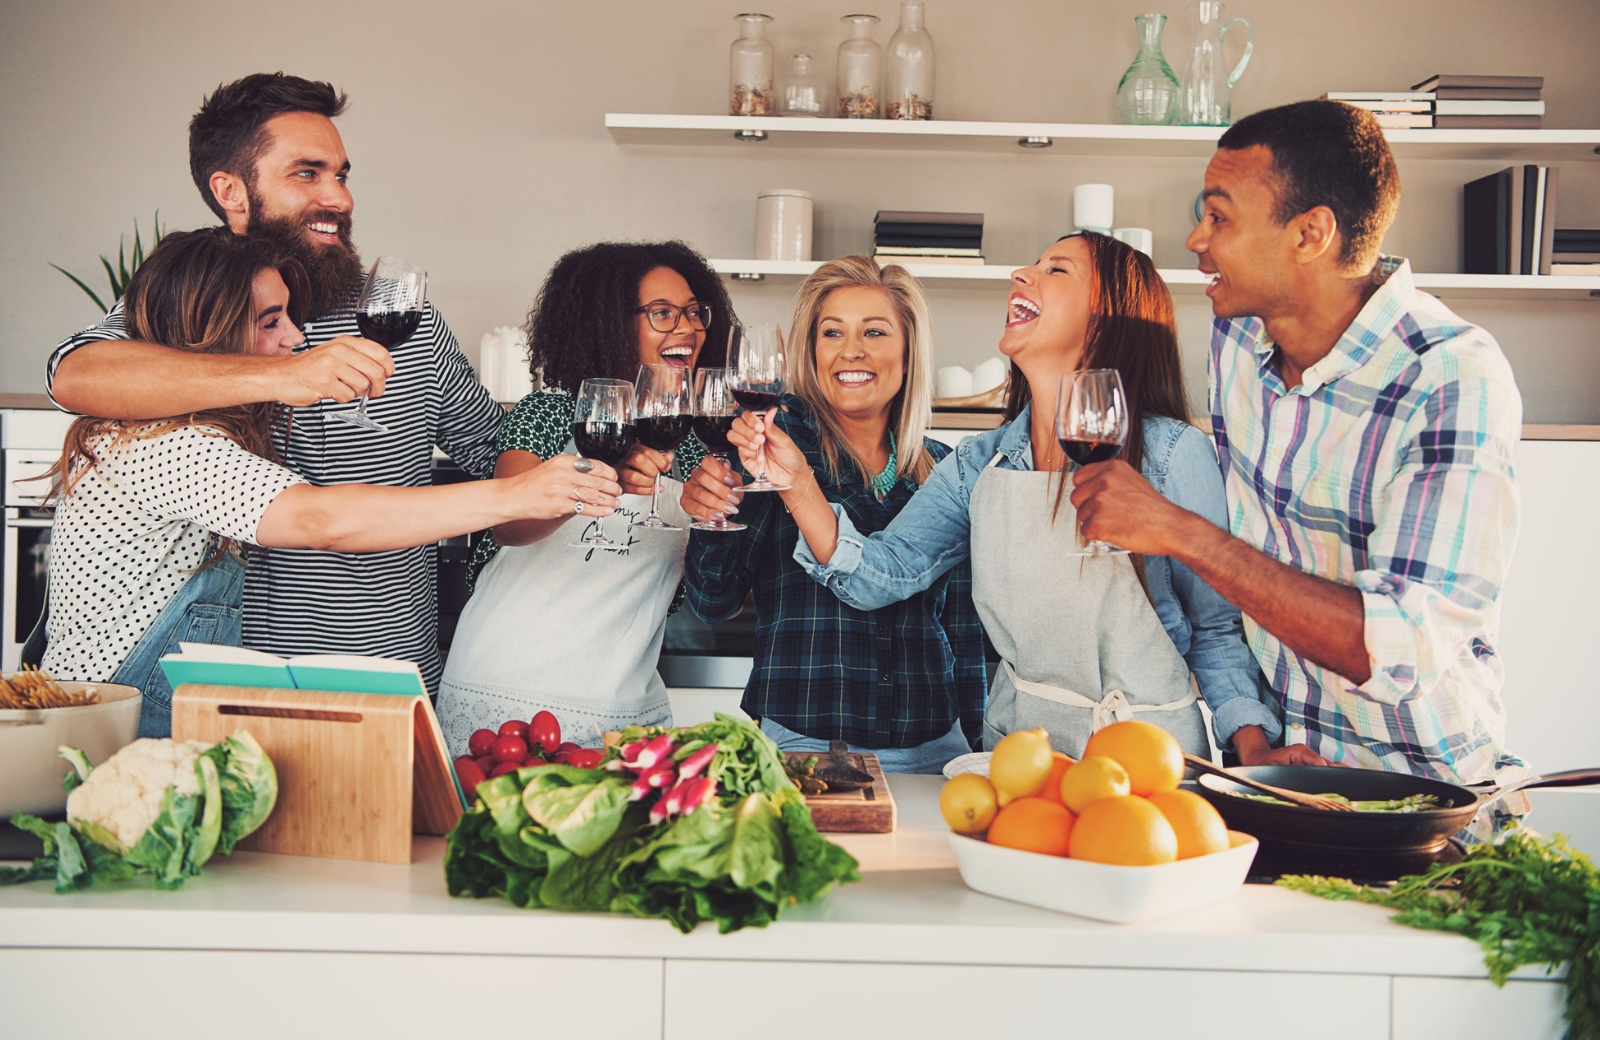 group of friends toasting wine in kitchen